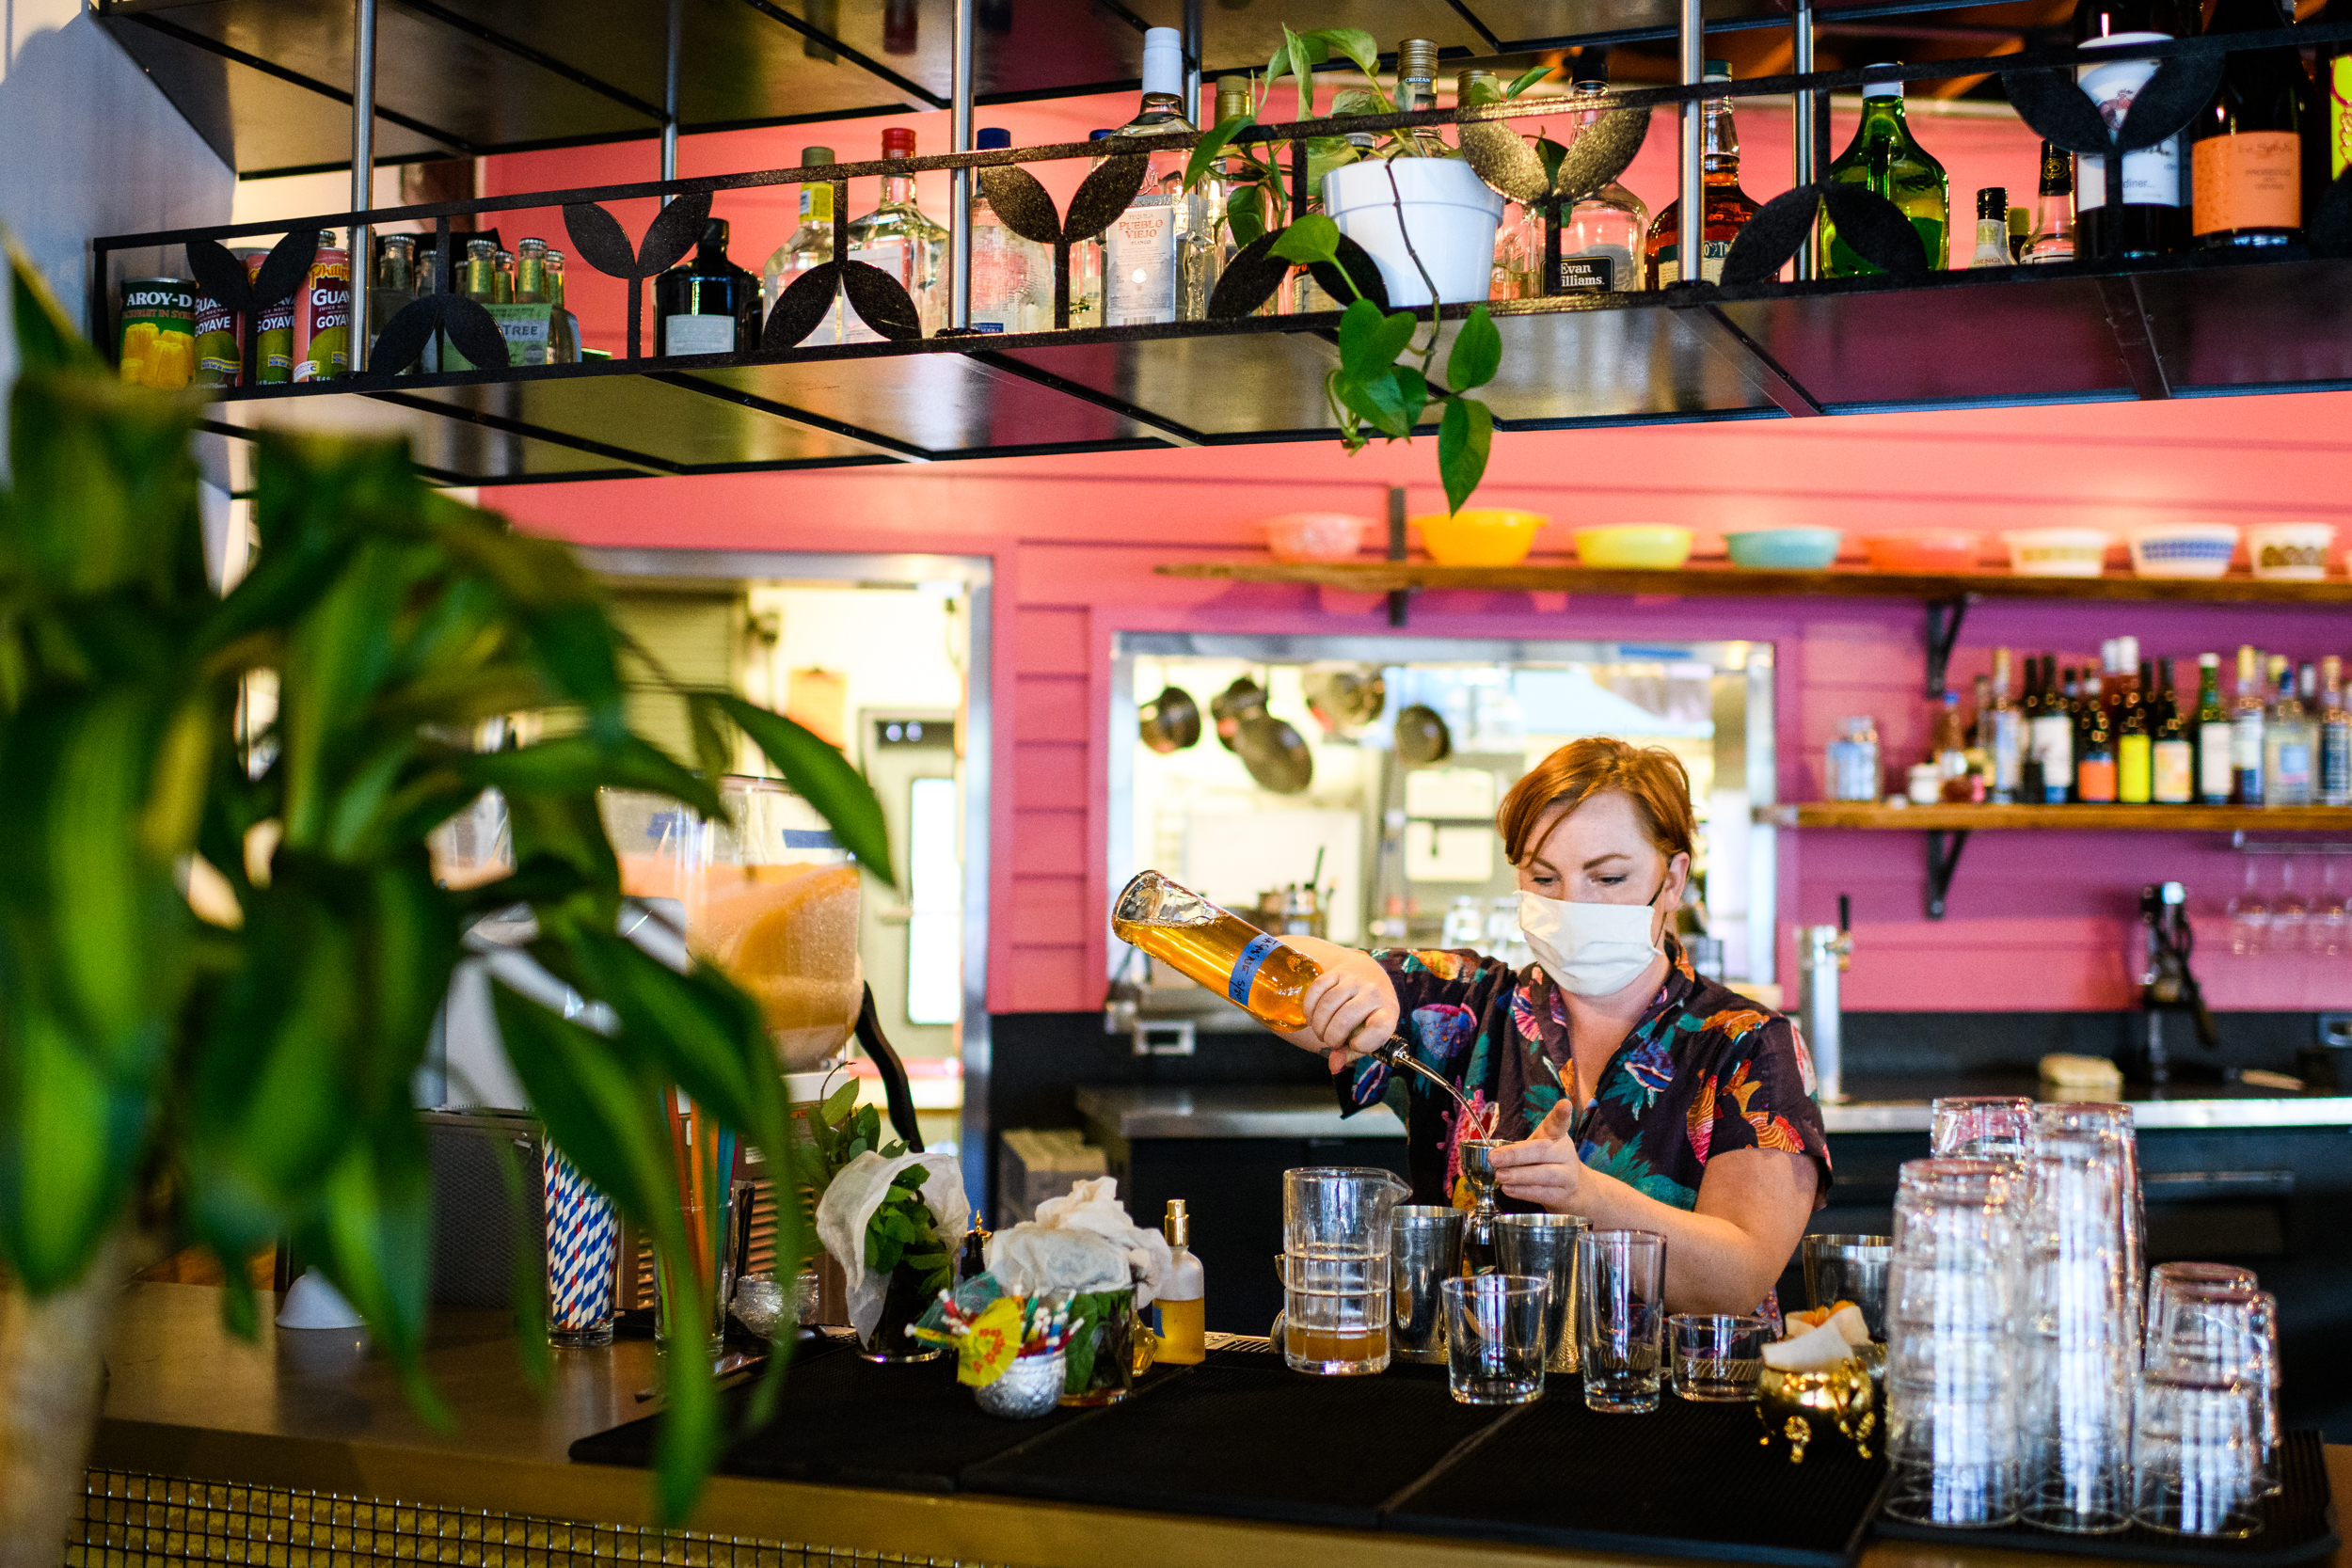 Oma's Hideaway bartender Emily Warden wears a mask while pouring a shot in a shaker in Portland, Oregon.